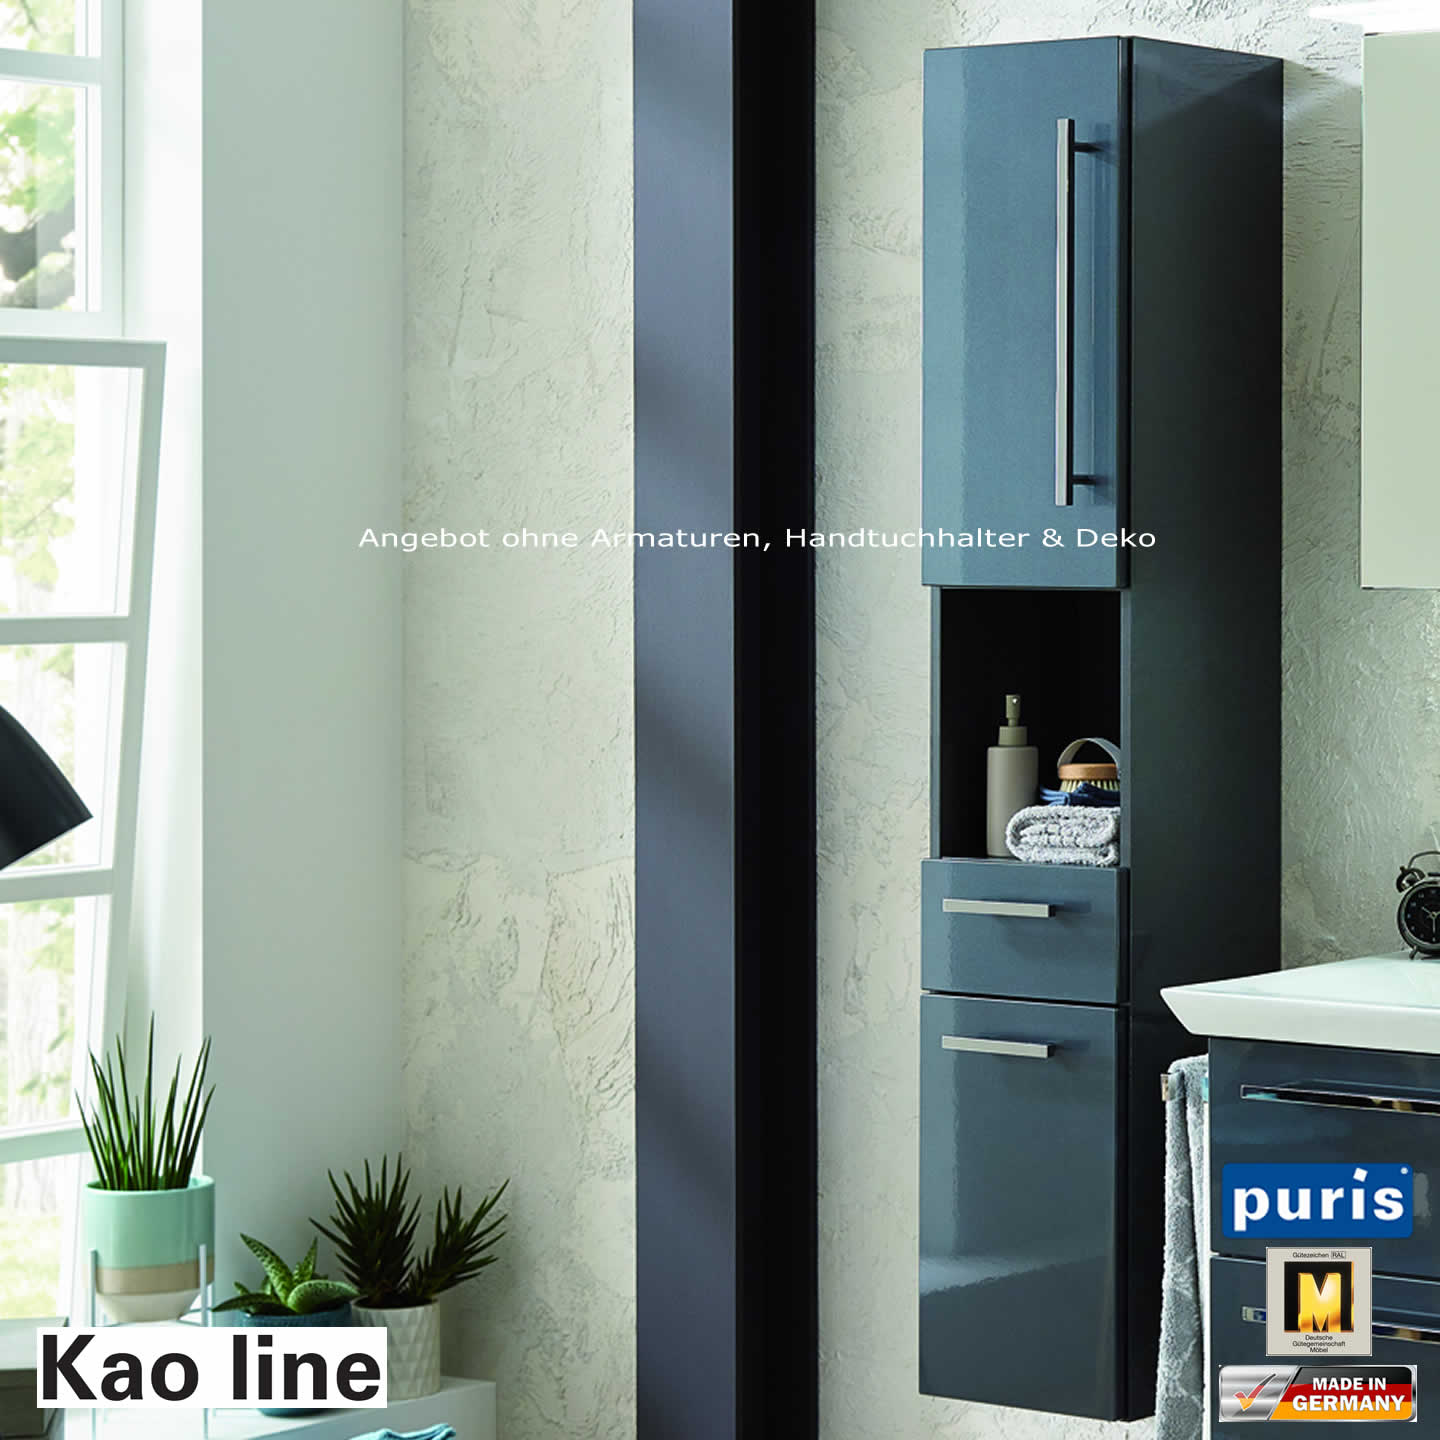 puris kao line hochschrank 30 cm oder 40 cm breit impulsbad. Black Bedroom Furniture Sets. Home Design Ideas